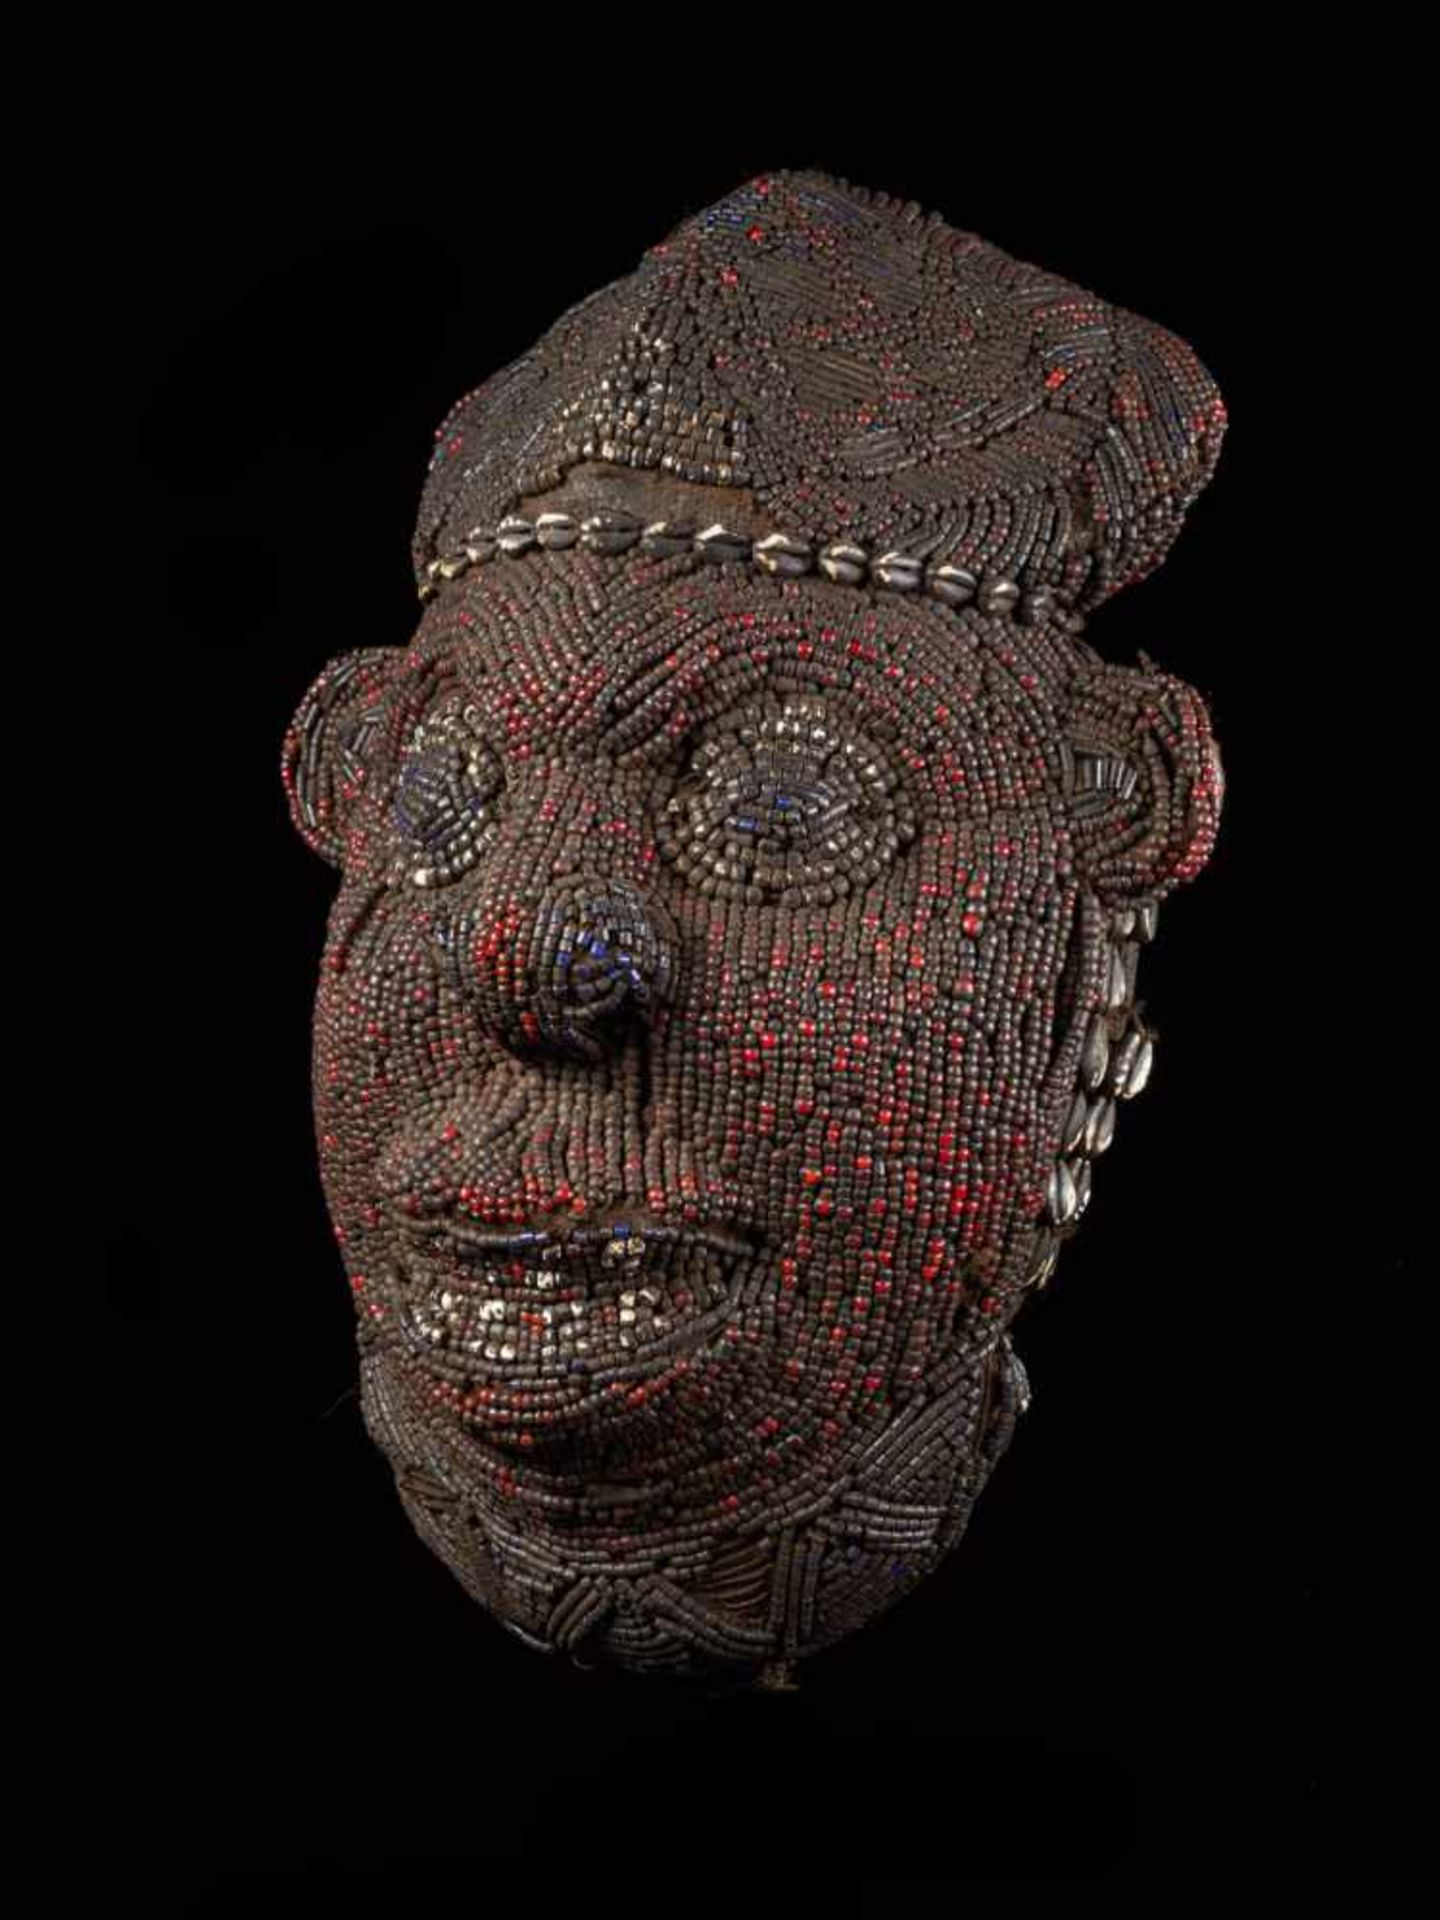 Beaded Red Head Mask - Tribal ArtThis exquisitely characterful face is beset with small red glass